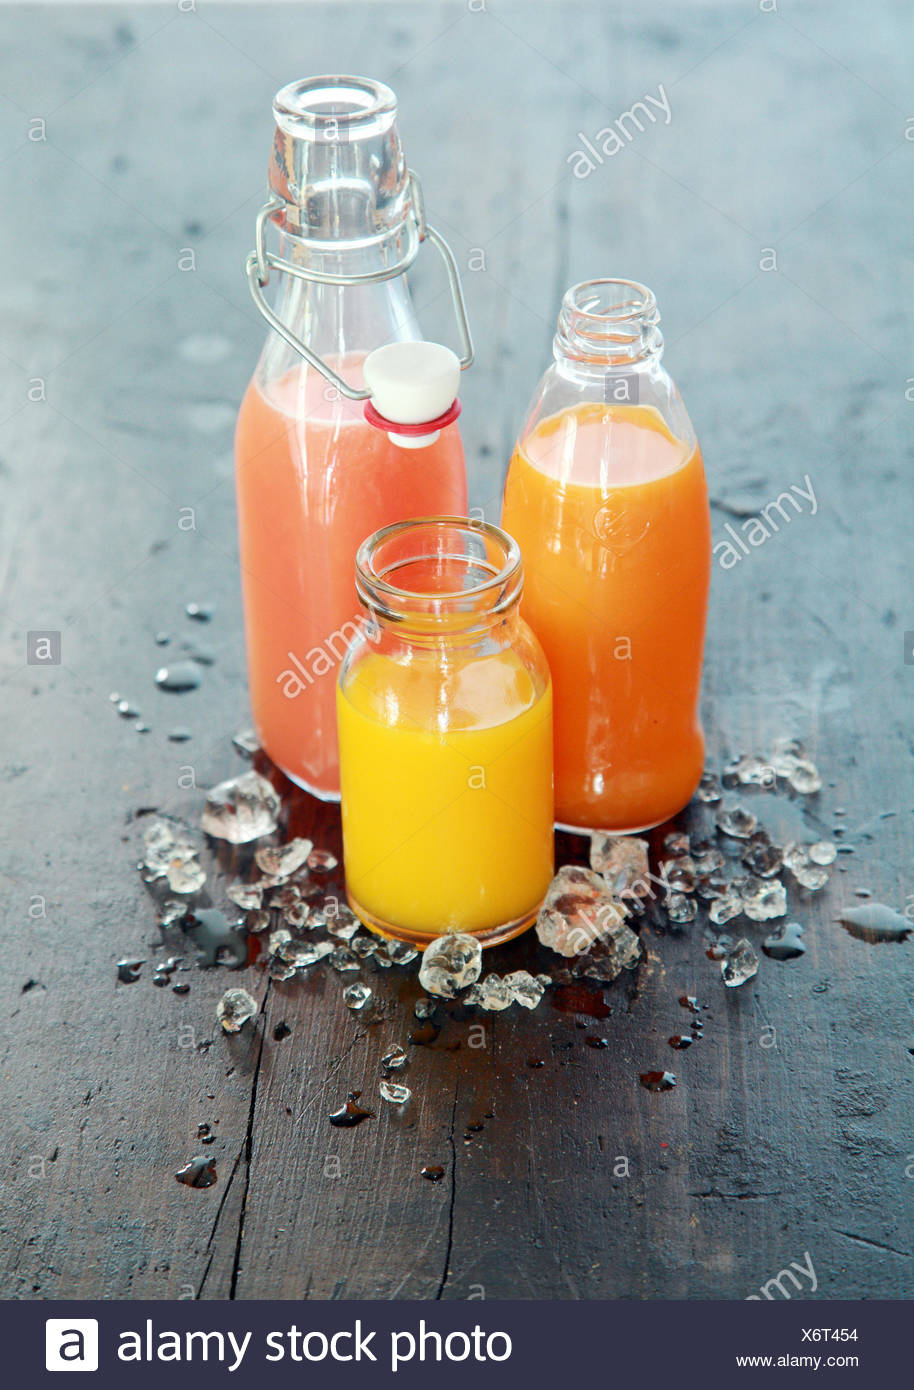 Healthy fresh home made fruit juices in glass bottles and jars